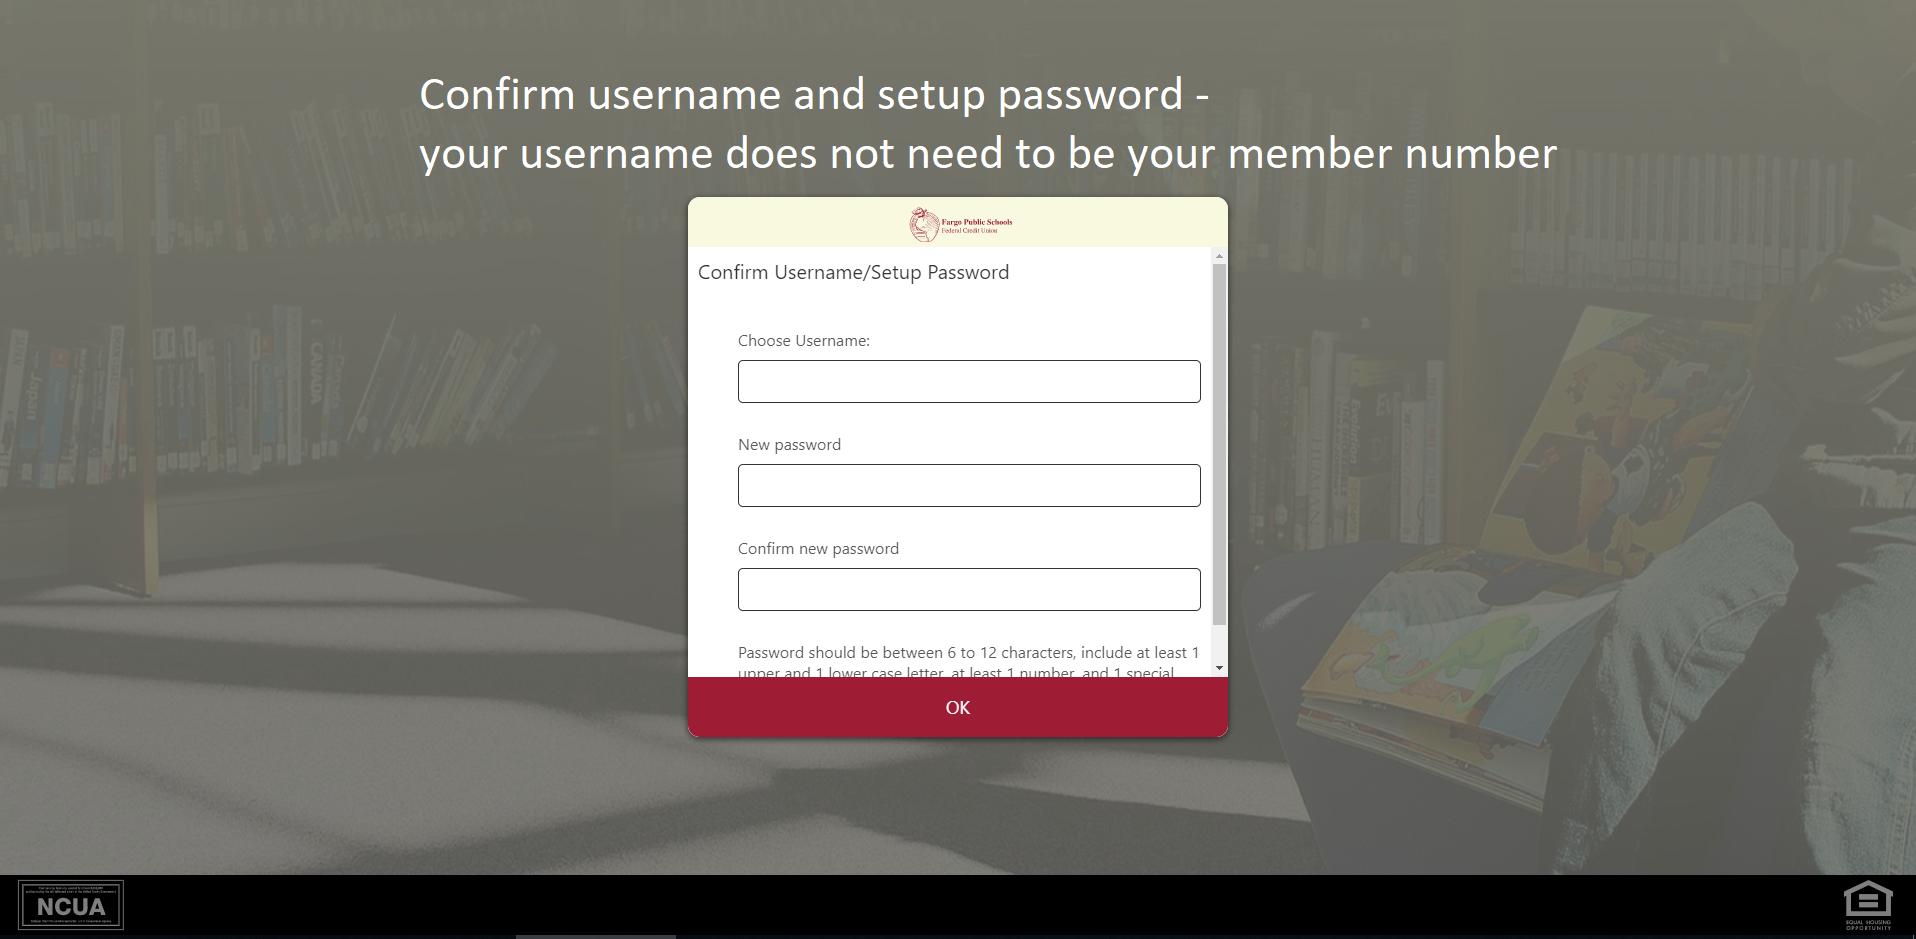 Screen shot of confirm username and set up password screen - Confirm username and set up password.